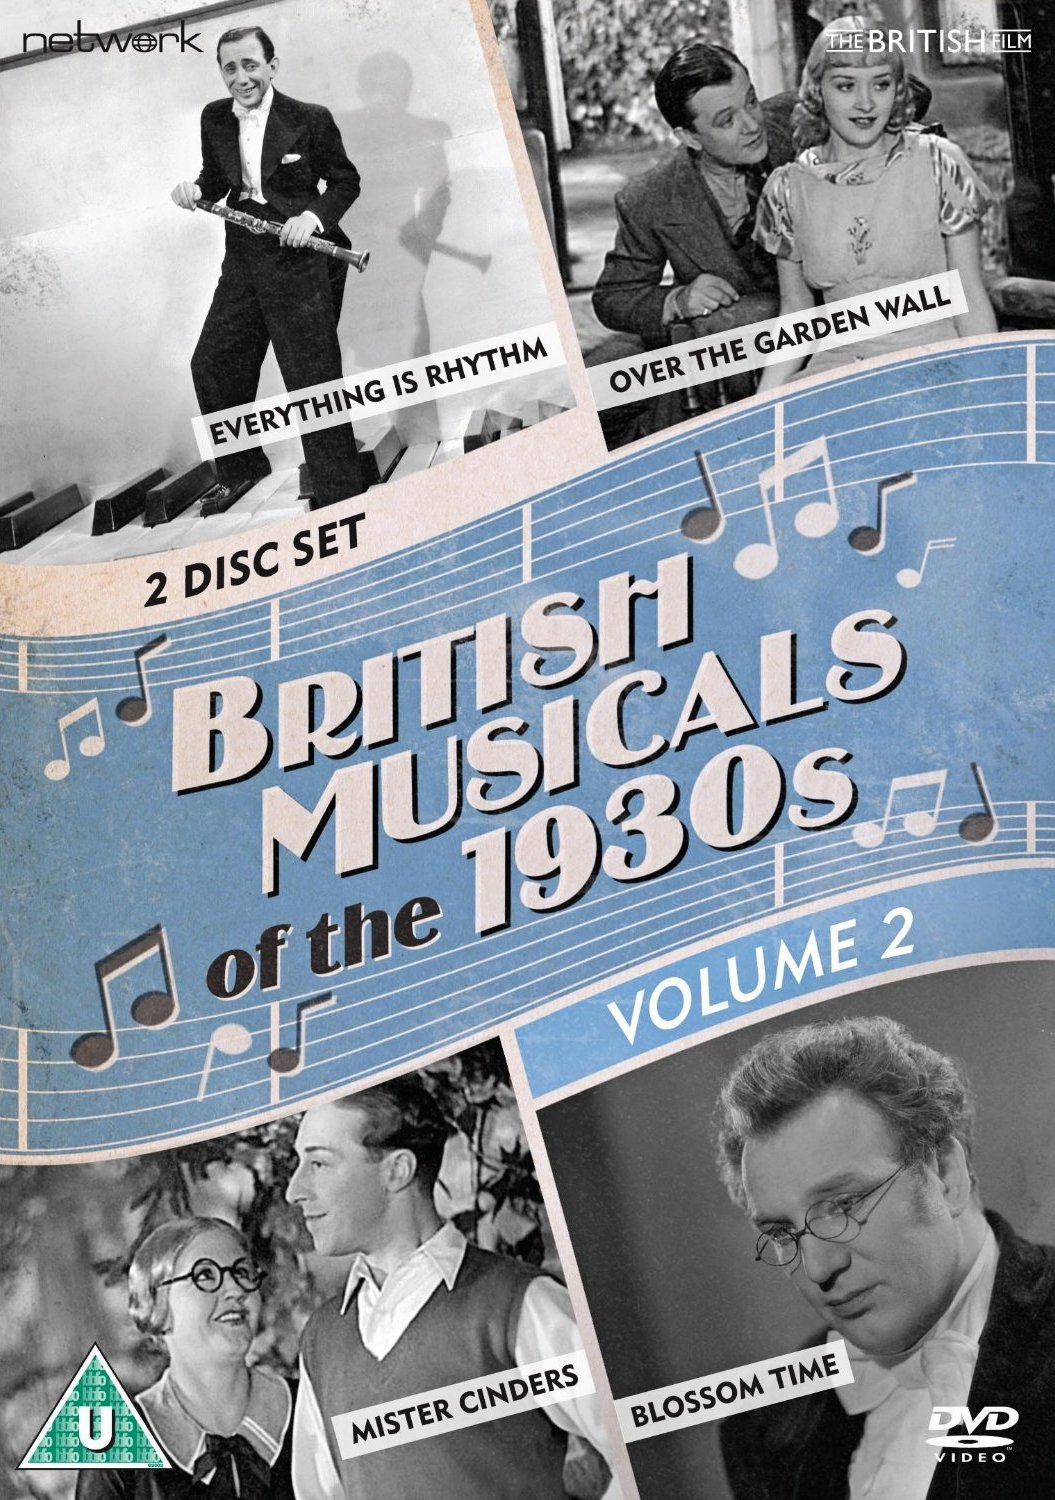 British Musicals of the 1930s Volume 2 DVD from Network and The British Film